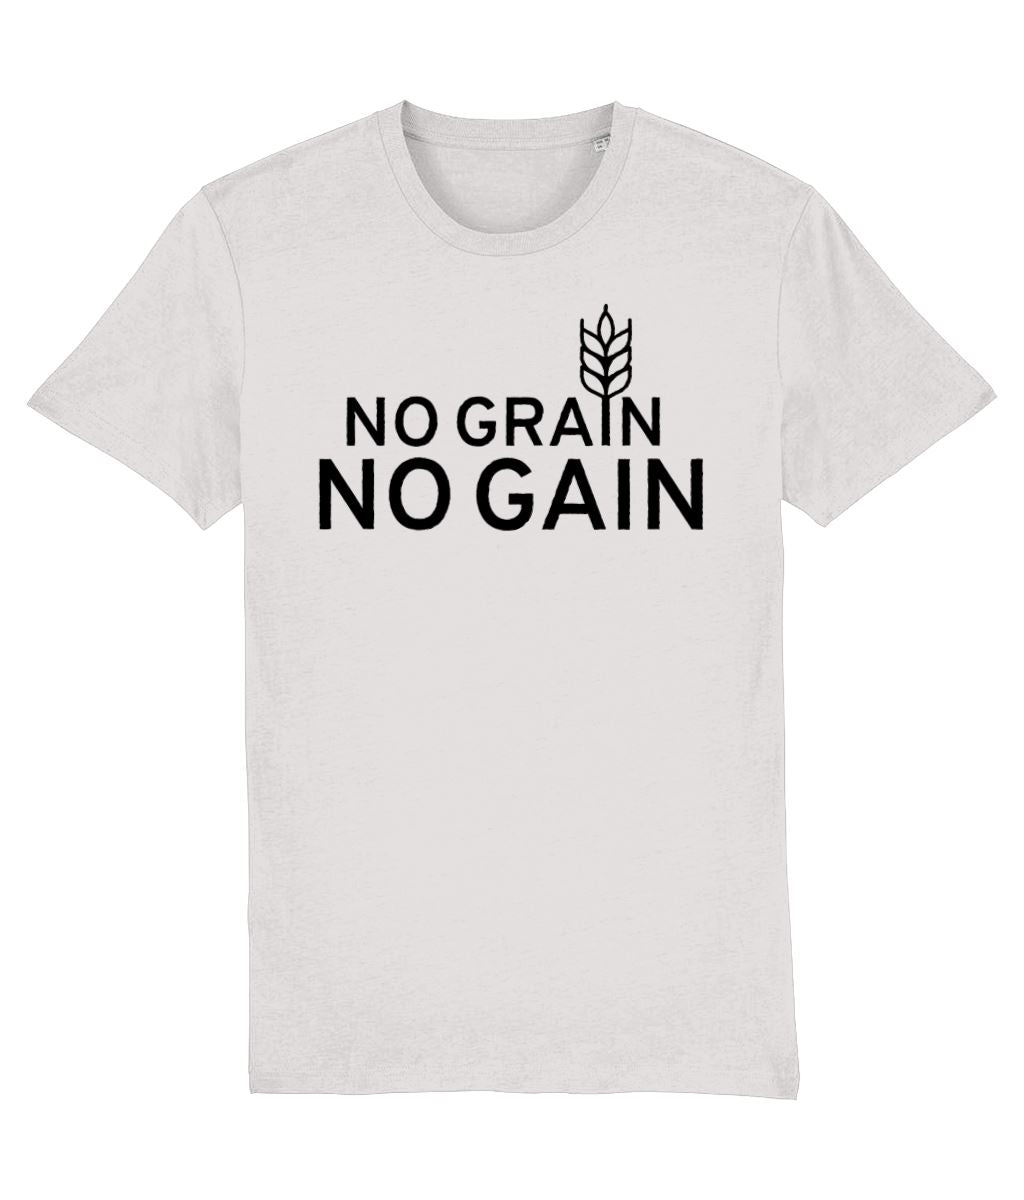 """No Grain, No Gain"" Vegan T-Shirt - 100% Organic Cotton (Unisex) Clothing Vegan Original Cream Heather Grey XX-Small"